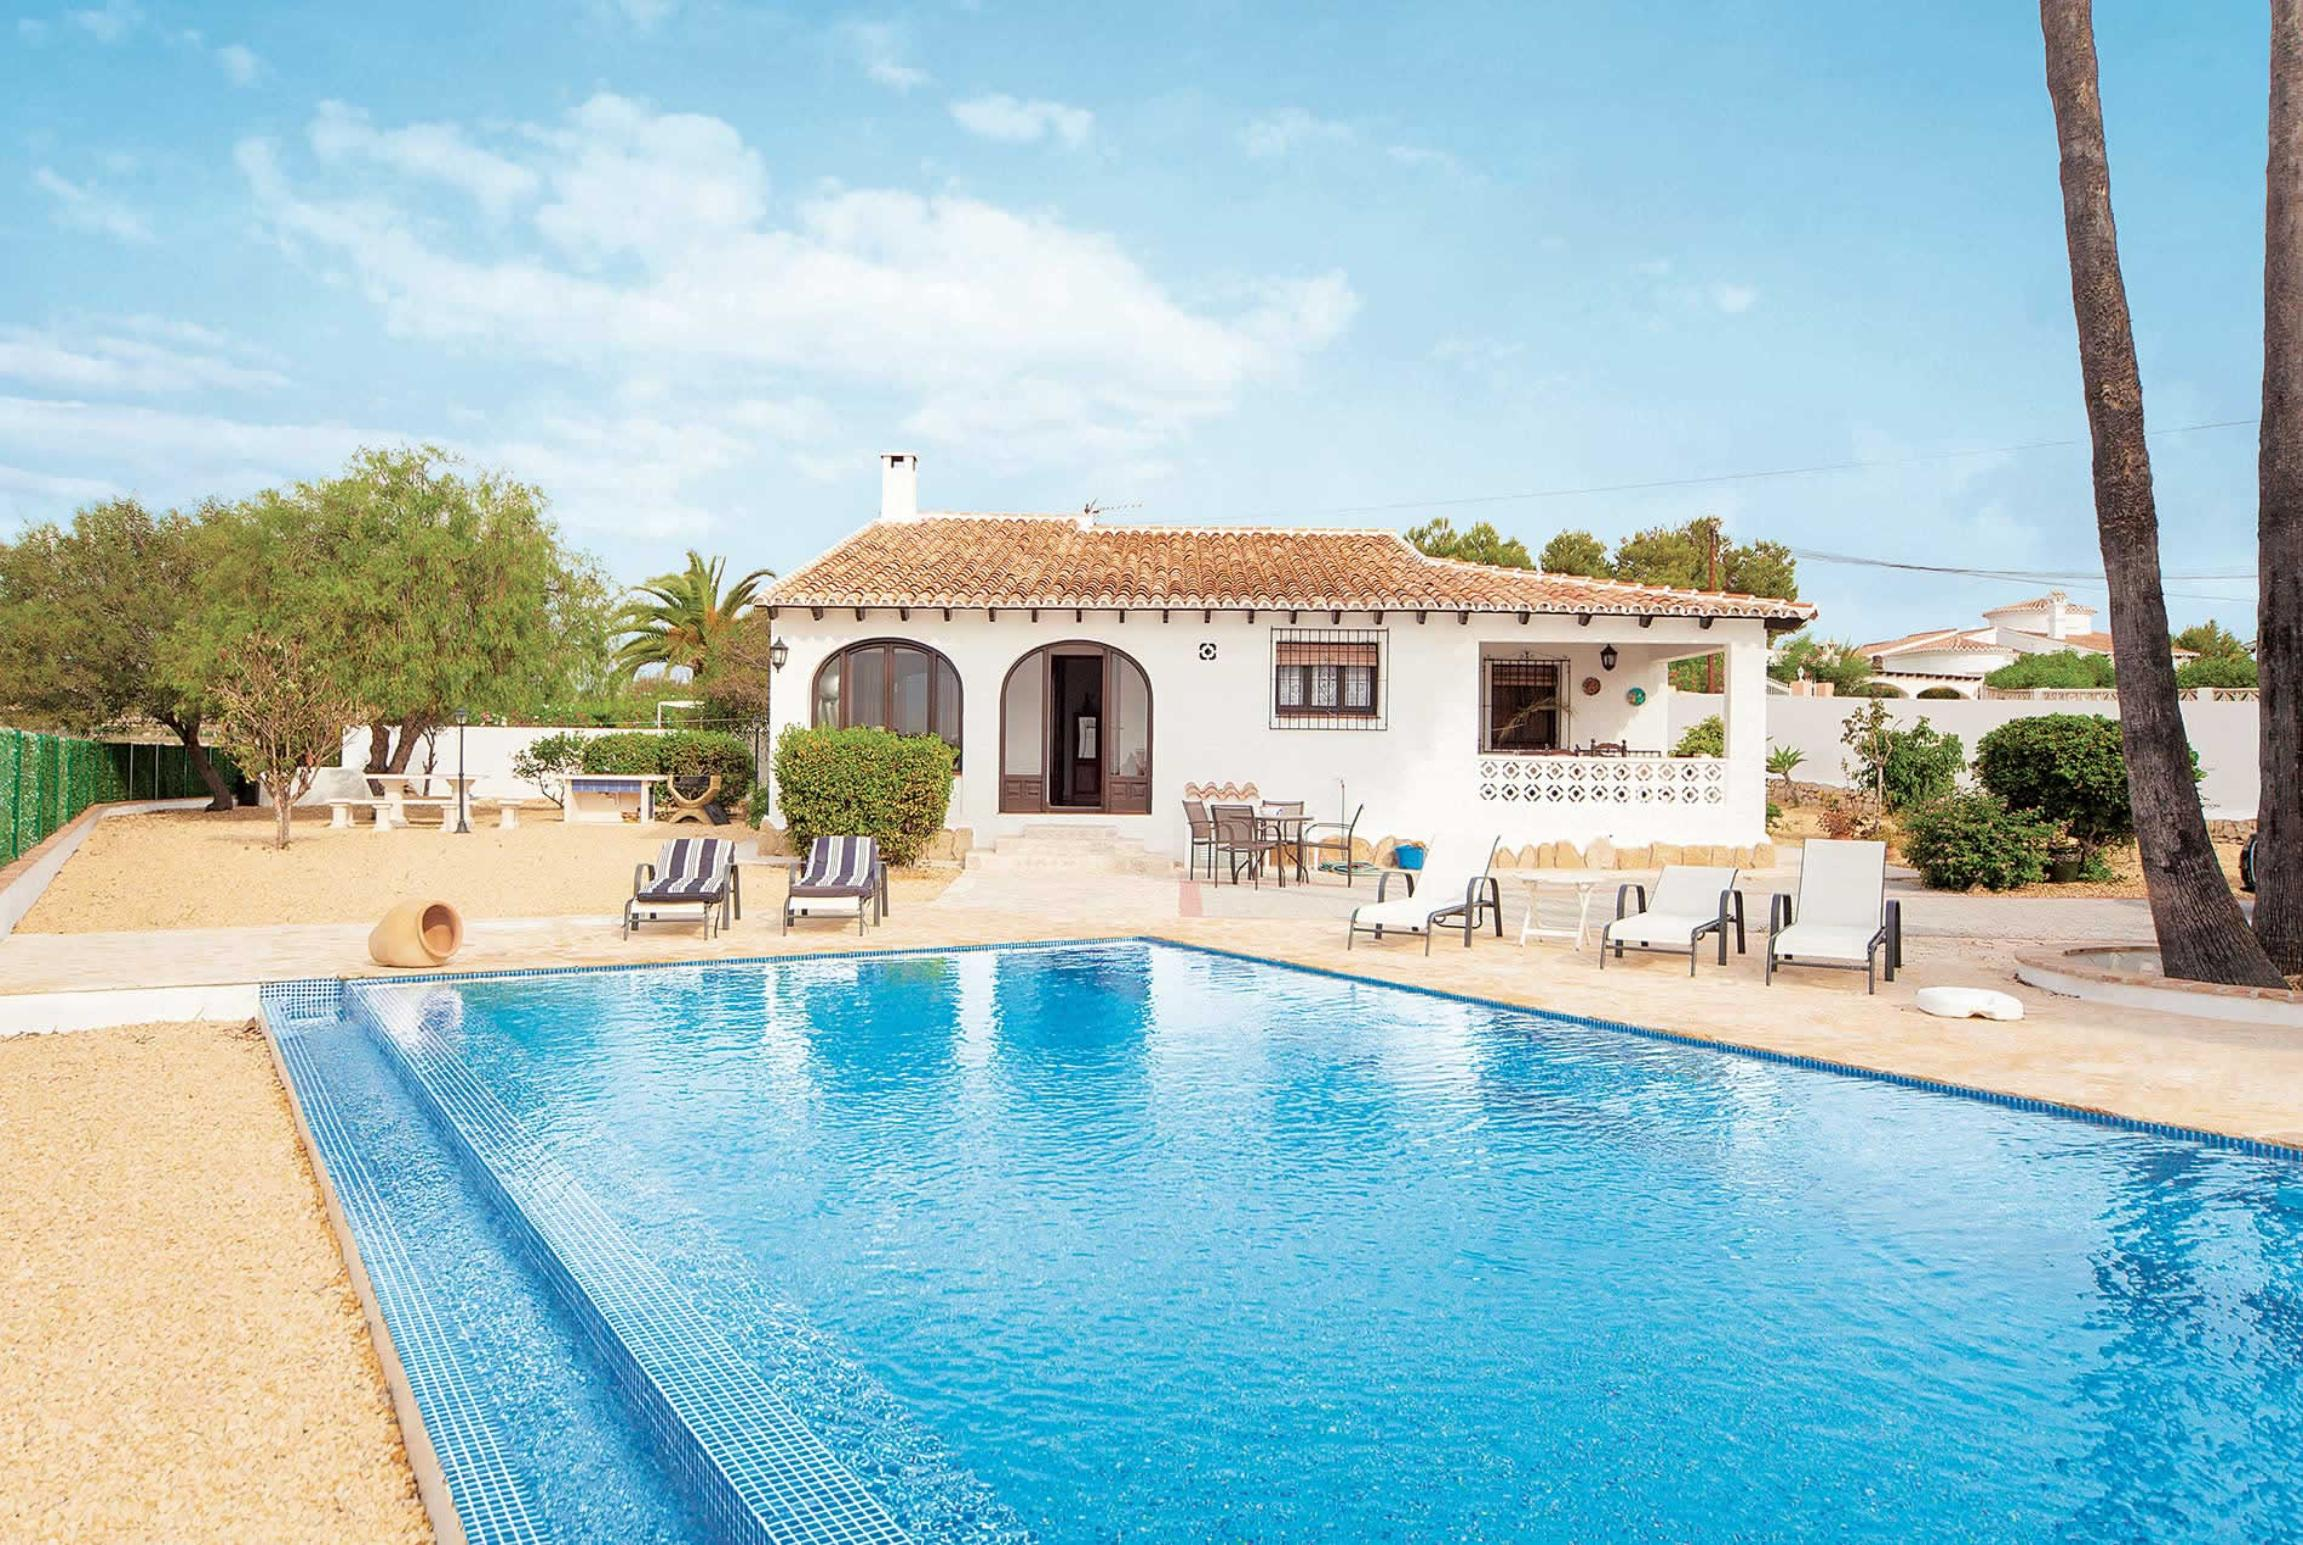 Read more about Canto de Hada villa